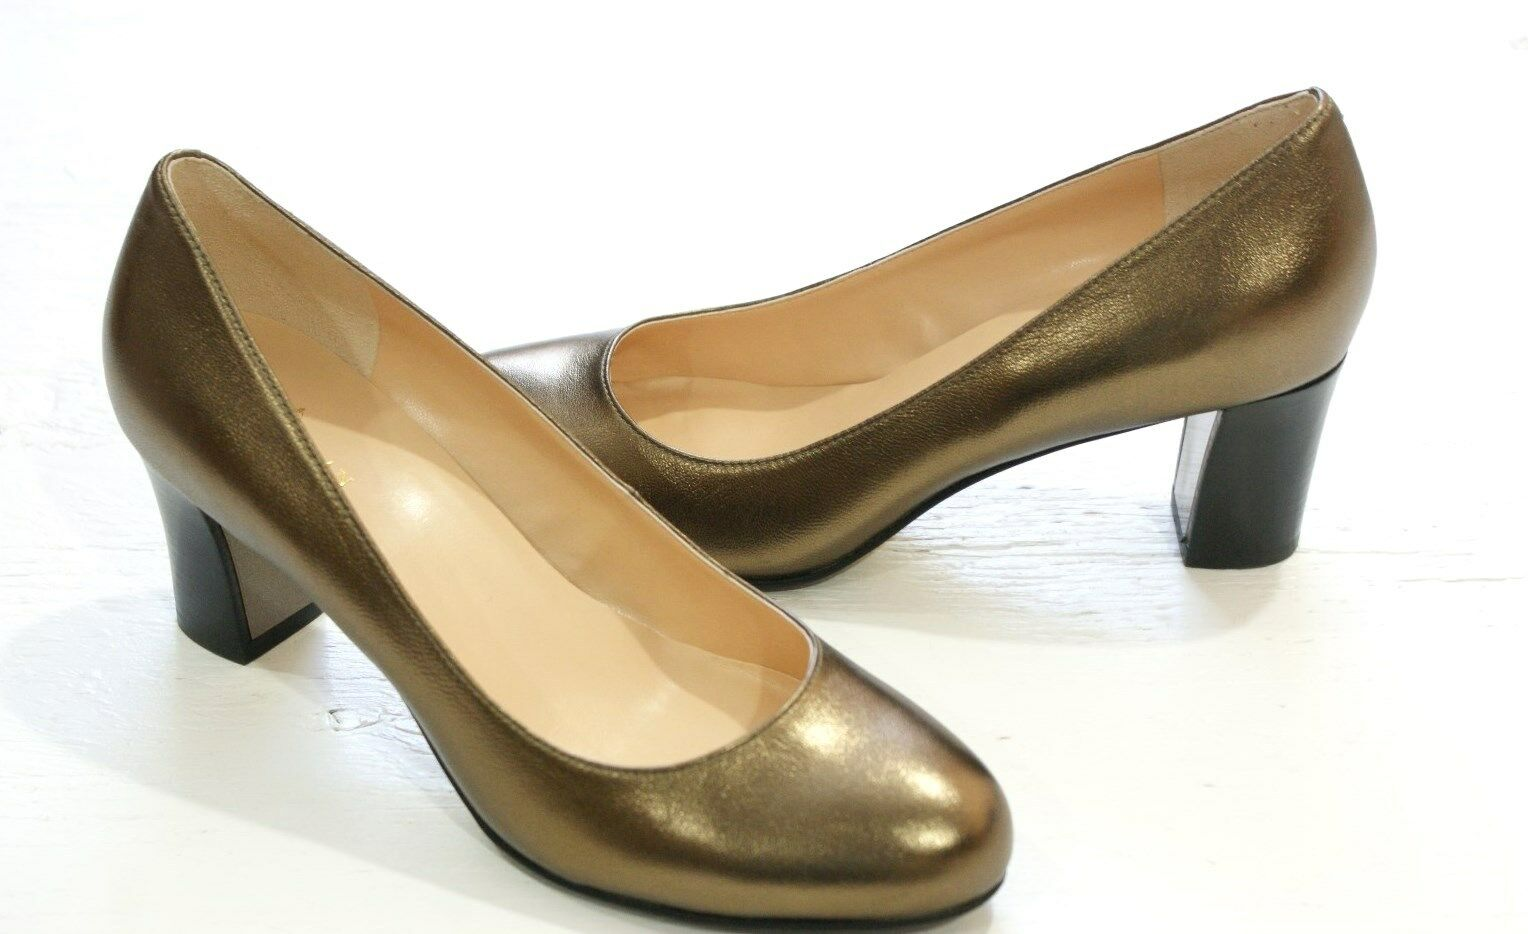 Cole Haan Edie Low Pump Pump Pump gold Metallic Dress shoes Womens 10 NEW IN BOX b3ba5f